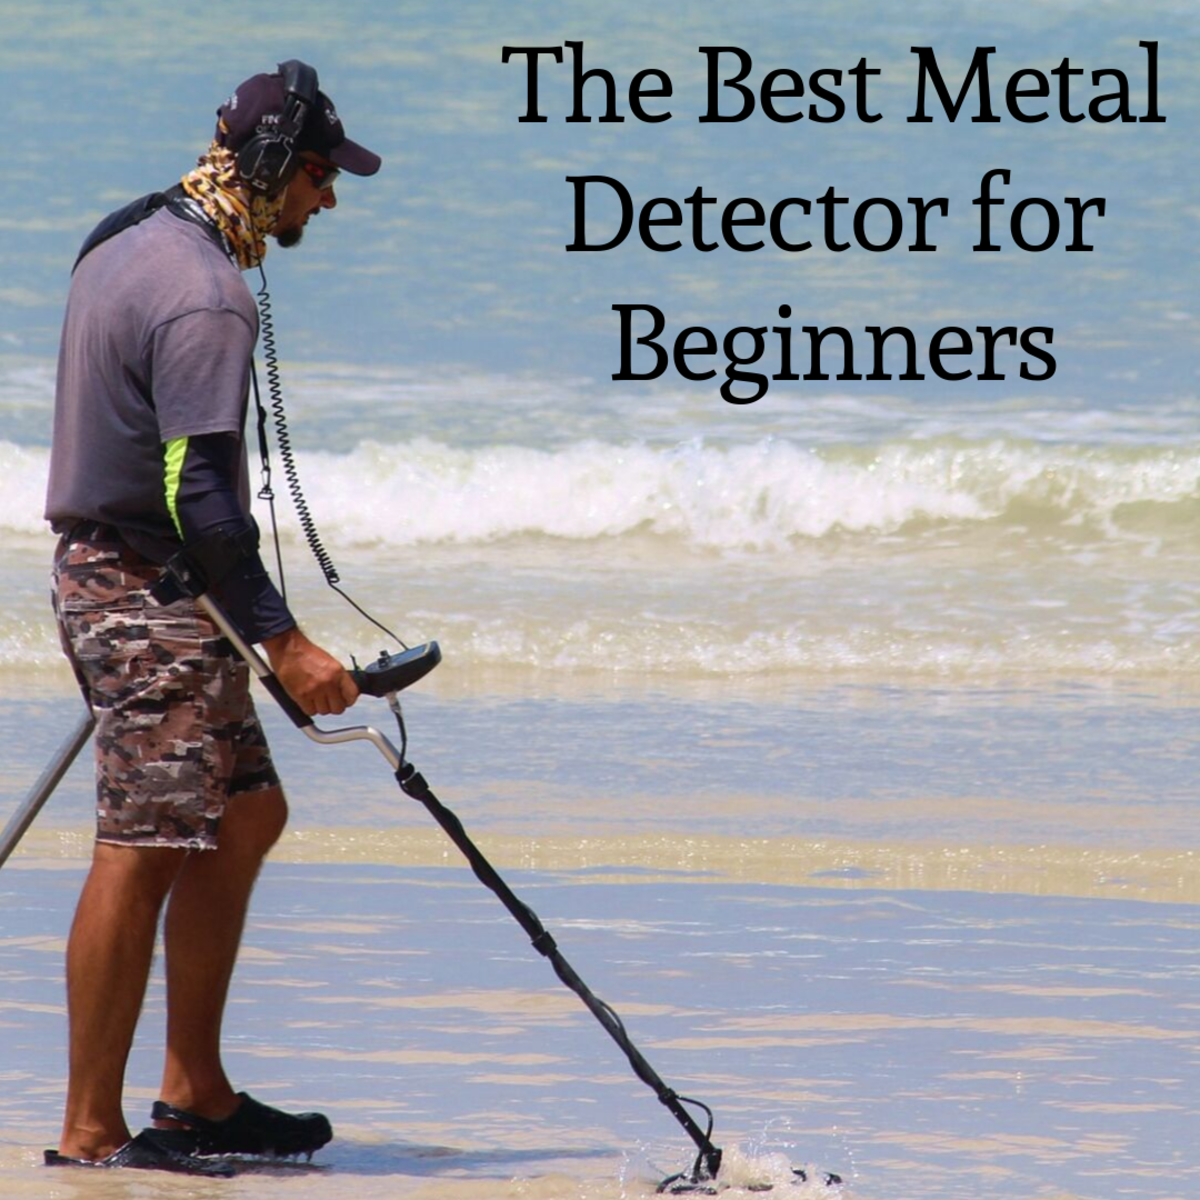 This guide will help beginners choose a great starter metal detector.